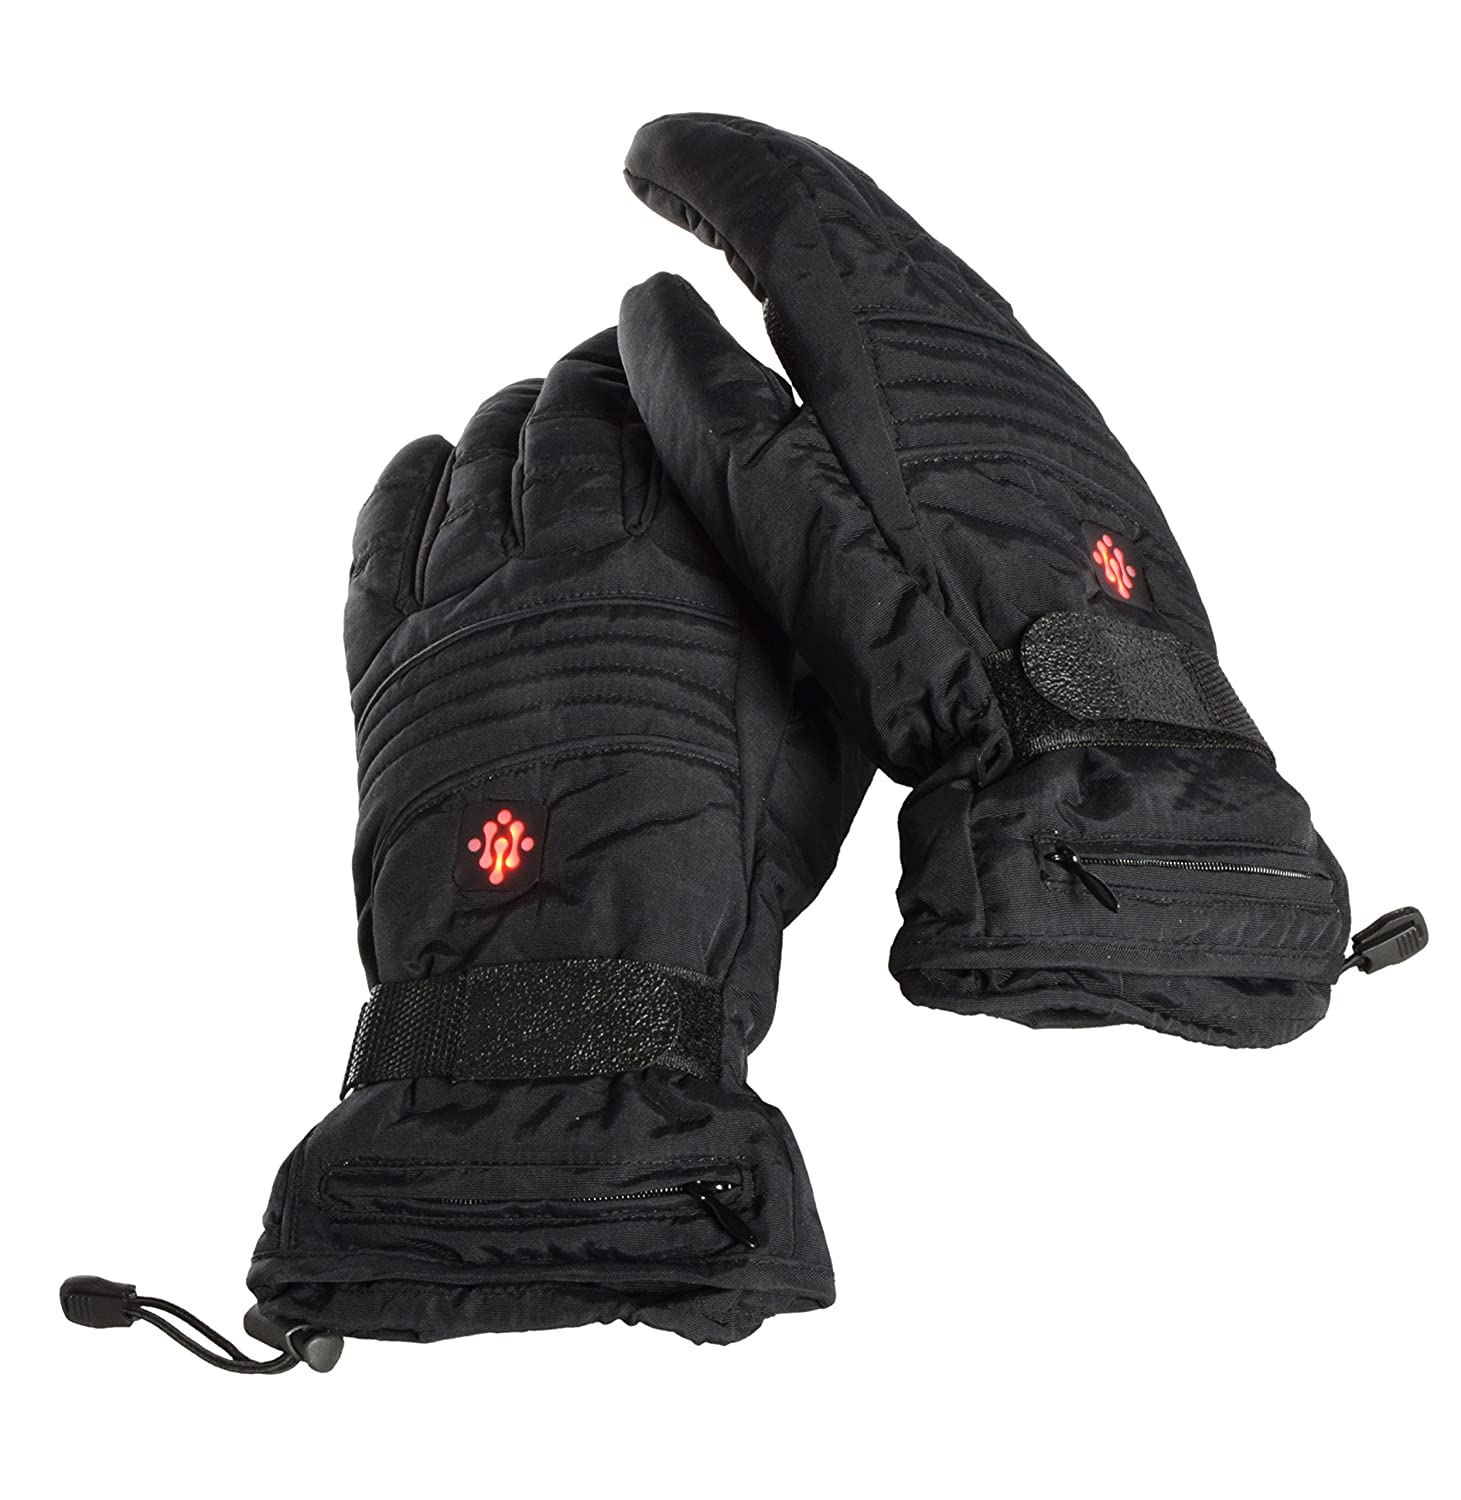 Ivation Heated Gloves, Electric Rechargeable Fleece lined with 3 LED Temperature Control Levels, Includes 2 3.7V Li-Ion Batteries for Quick & Even Heating, Adjustable Elastic & Velcro Band, Works up to 8 hours